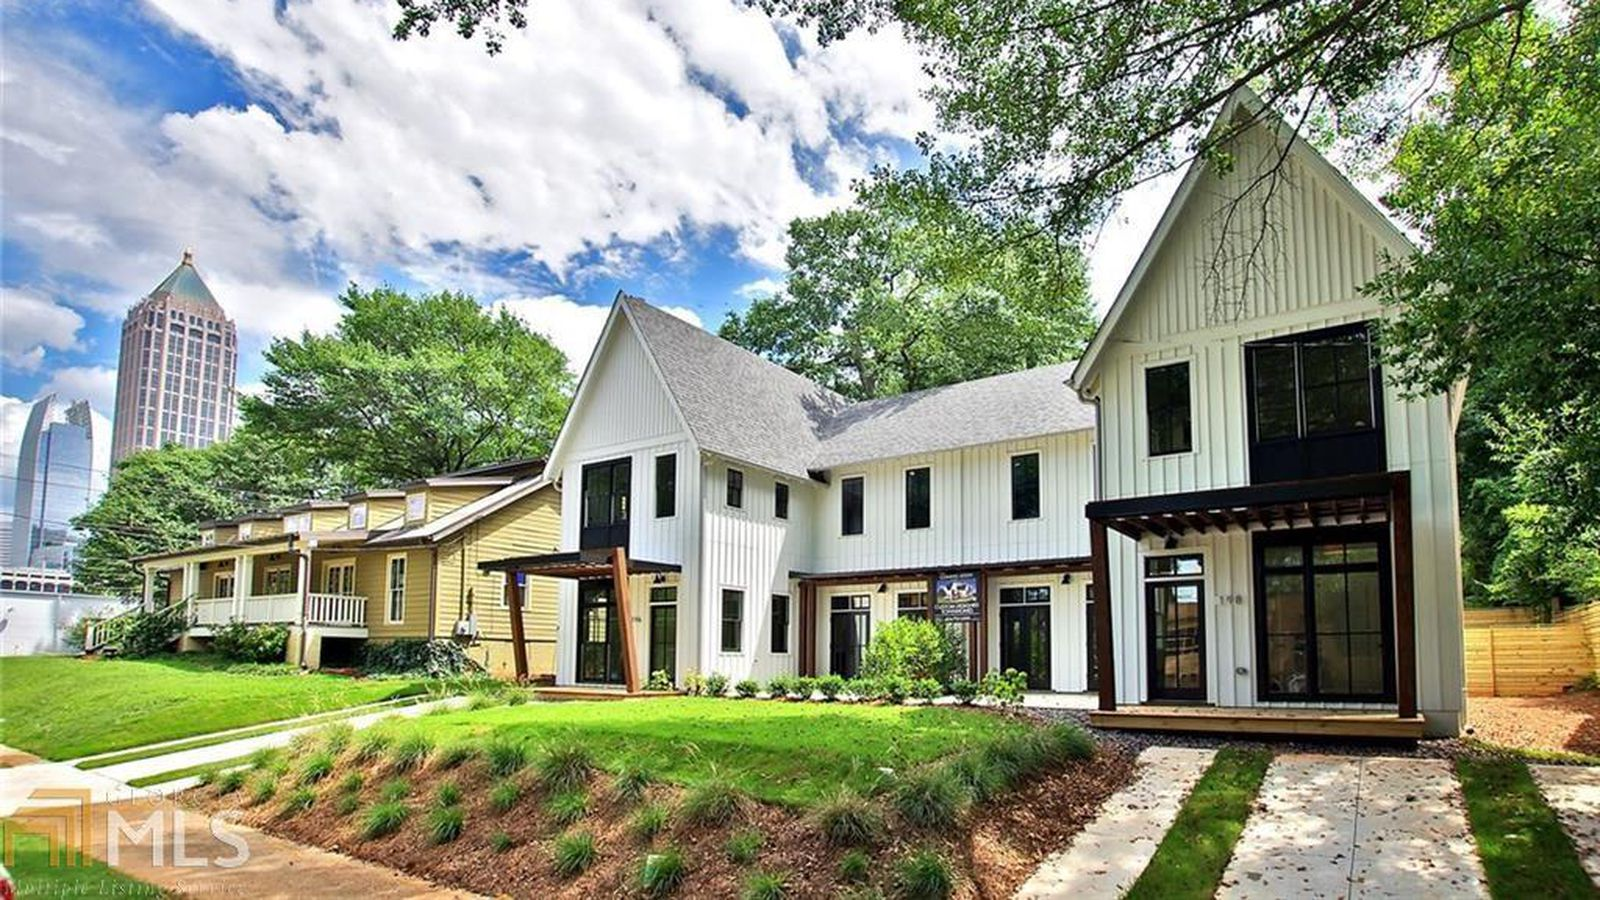 Atlanta s modern farmhouse townhome edition pops up in - 3 bedroom homes for rent in atlanta ga ...